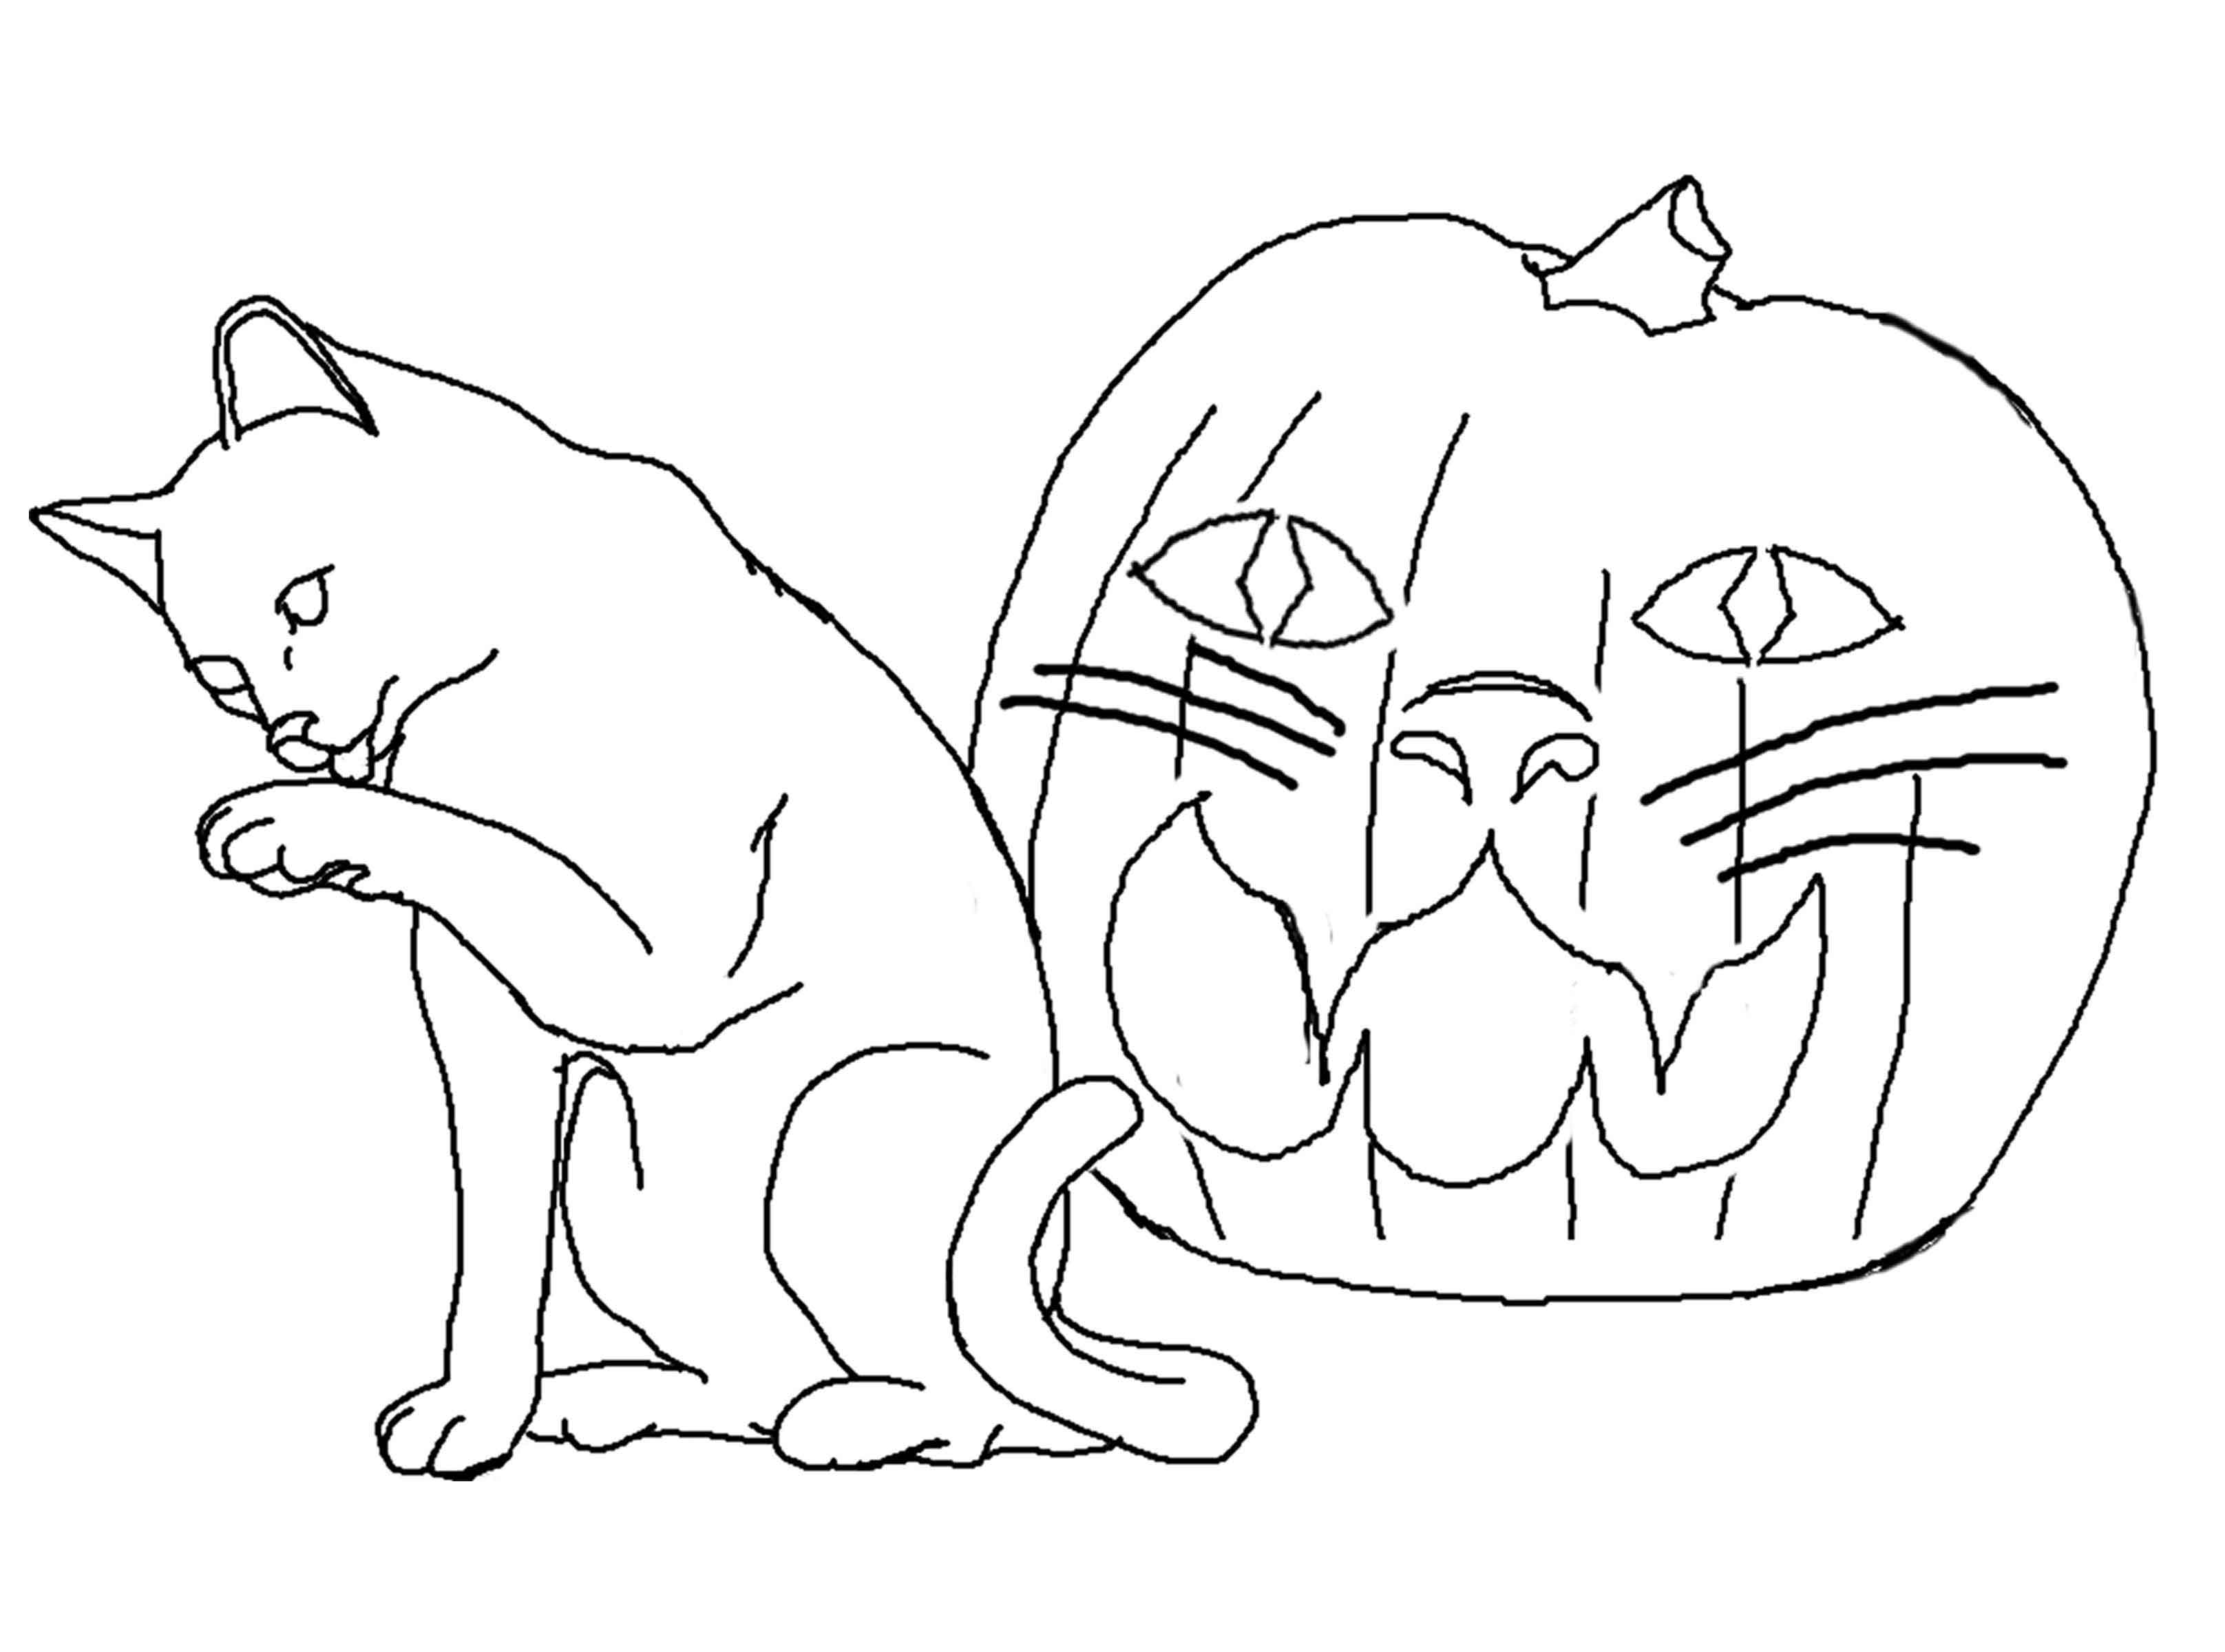 halloween cat coloring page halloween cat coloring pages best coloring pages for kids coloring halloween page cat